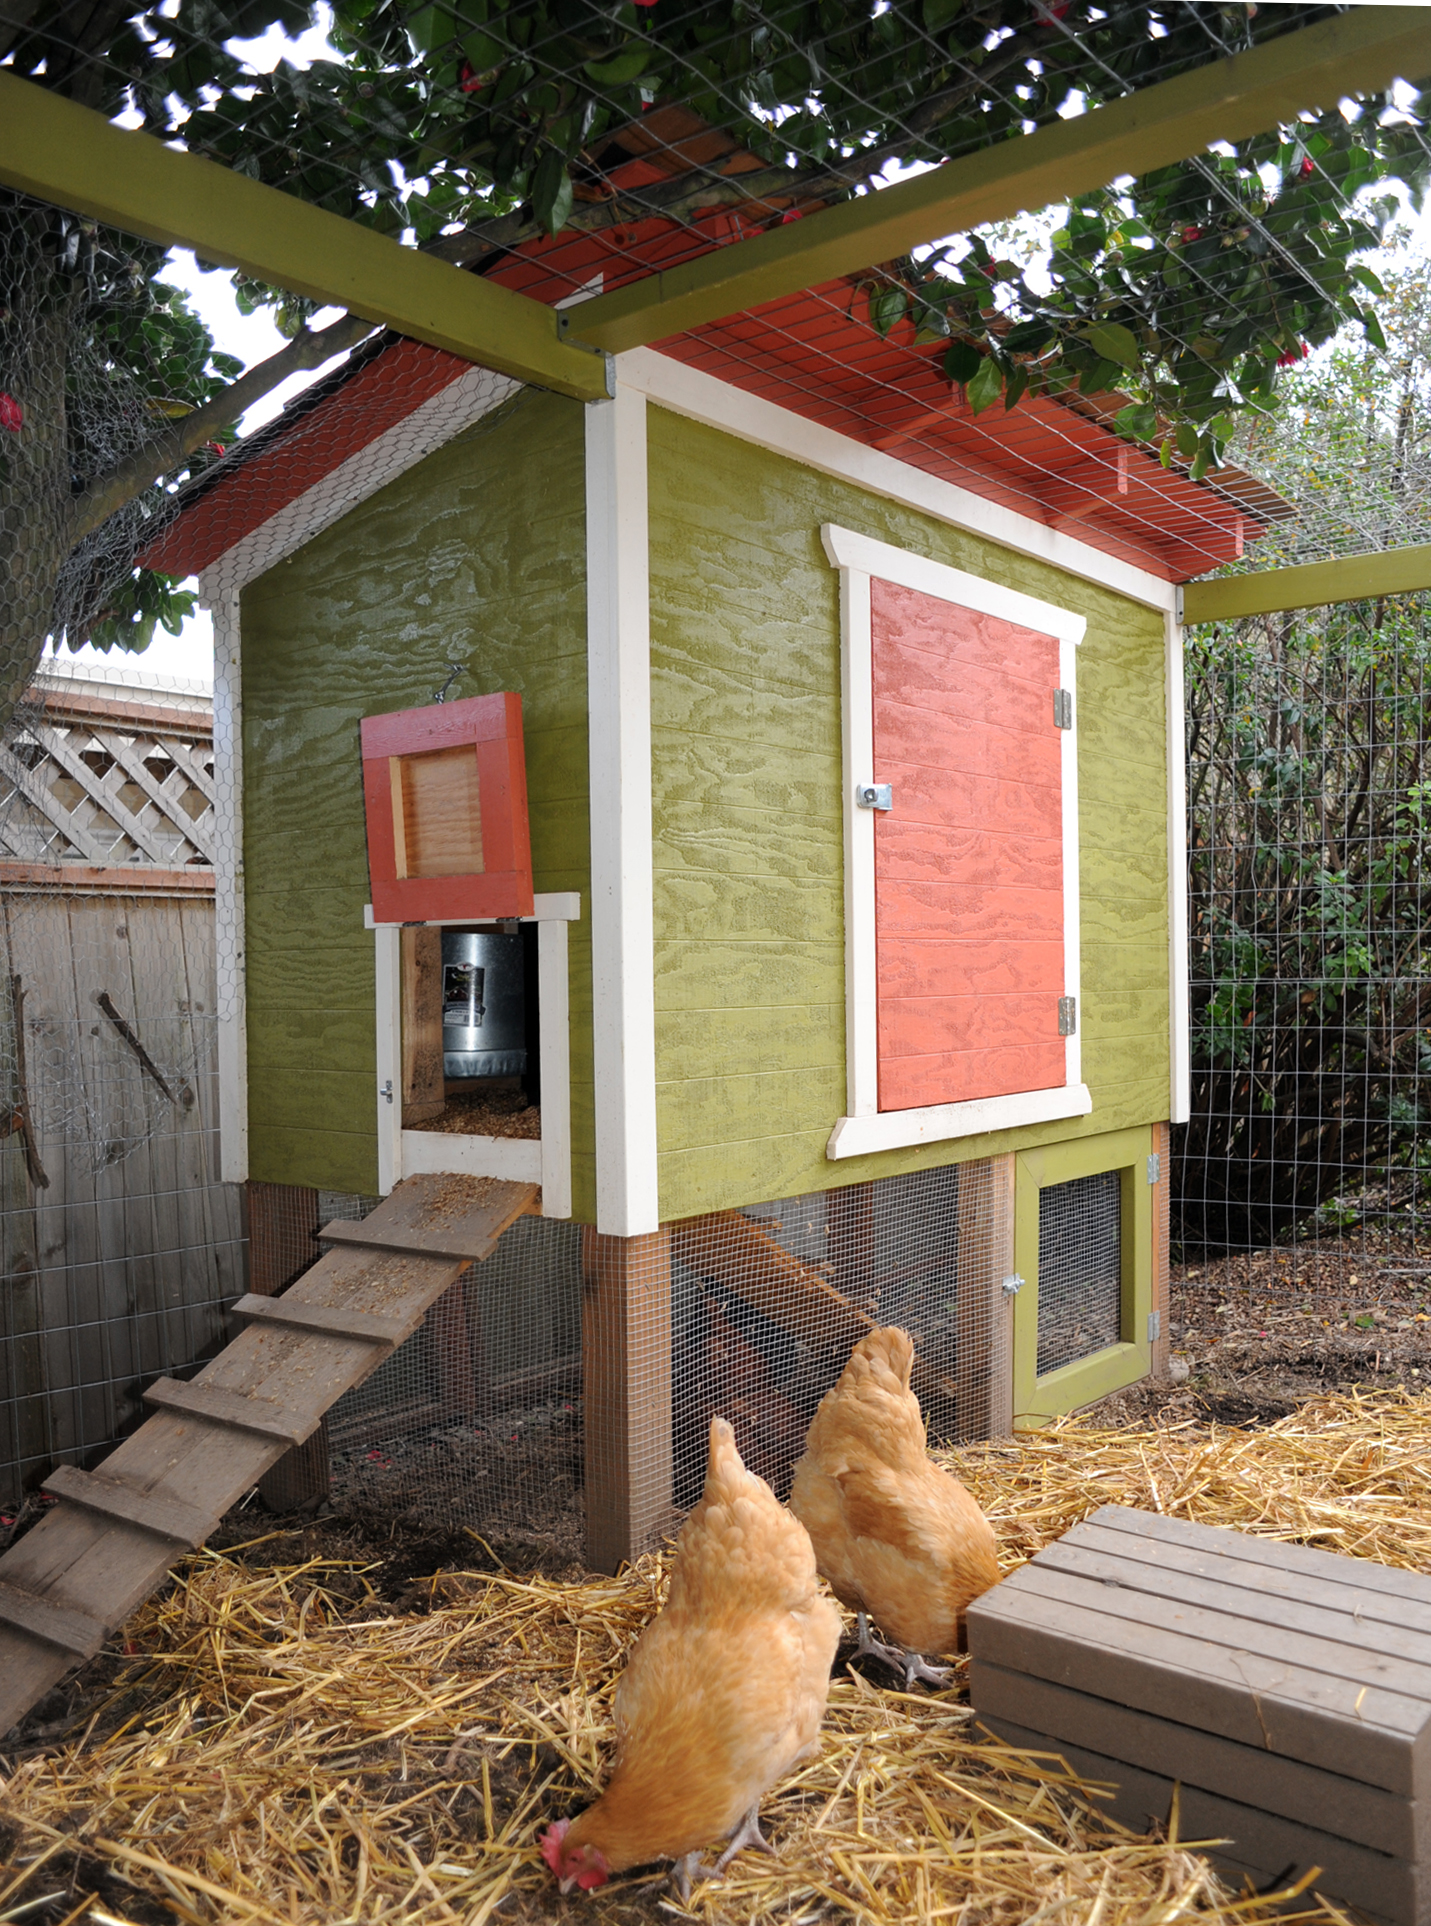 how warm should a chicken coop be